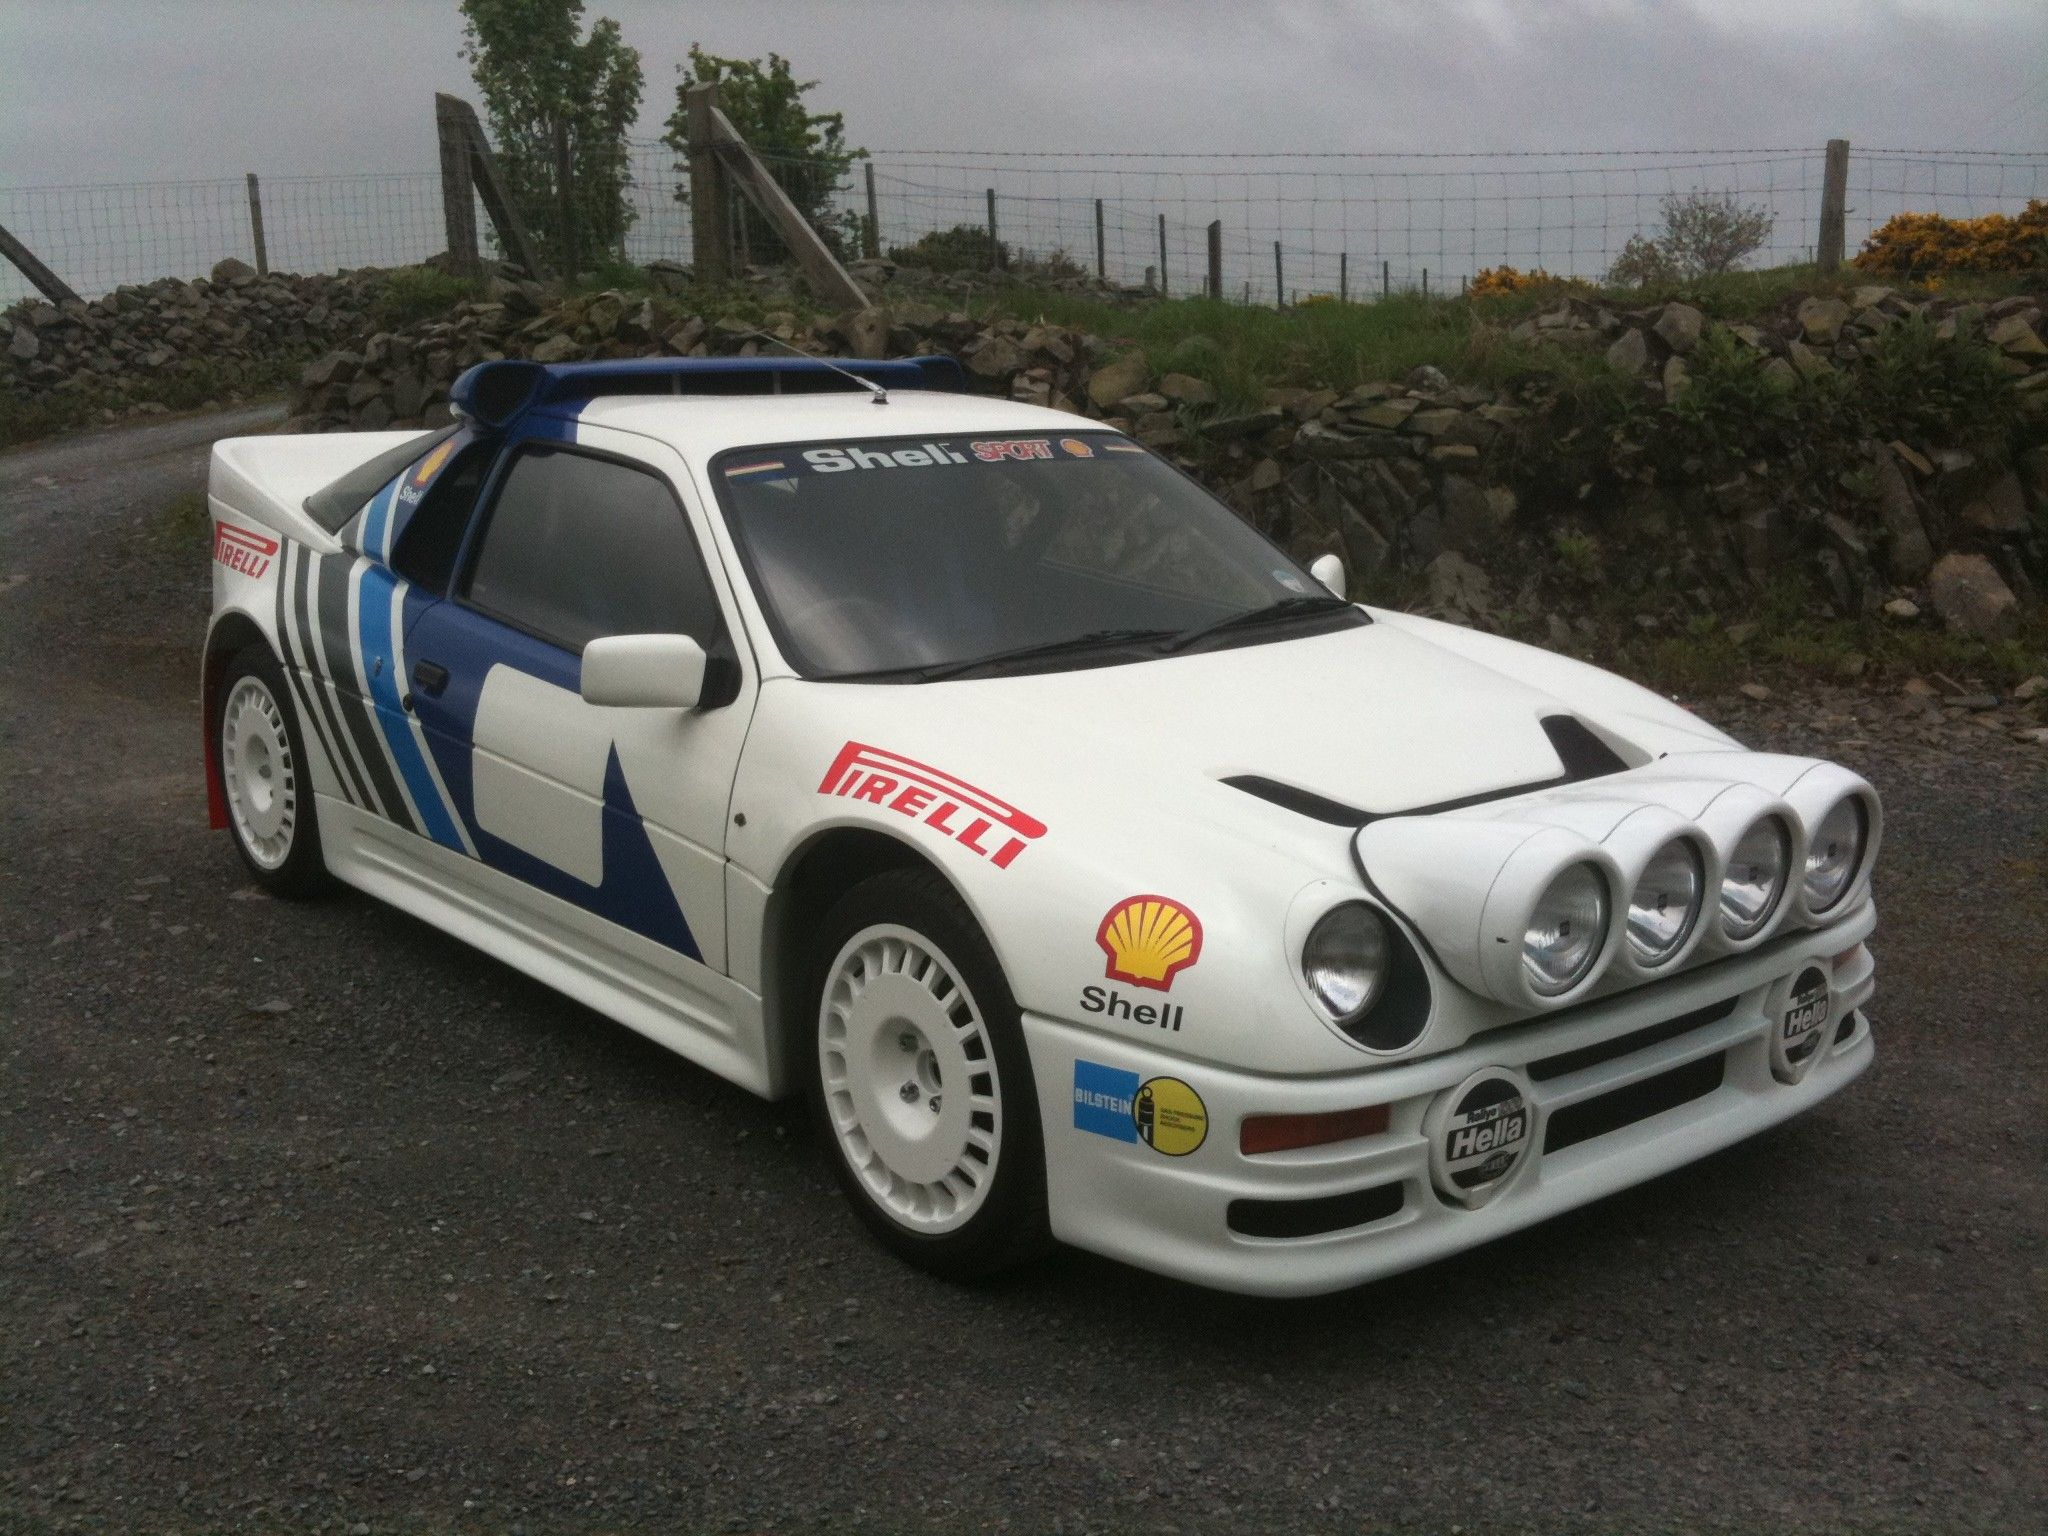 Inspirational Ford Rs200 Replica In 2020 Replica Cars Ford Ford Rs